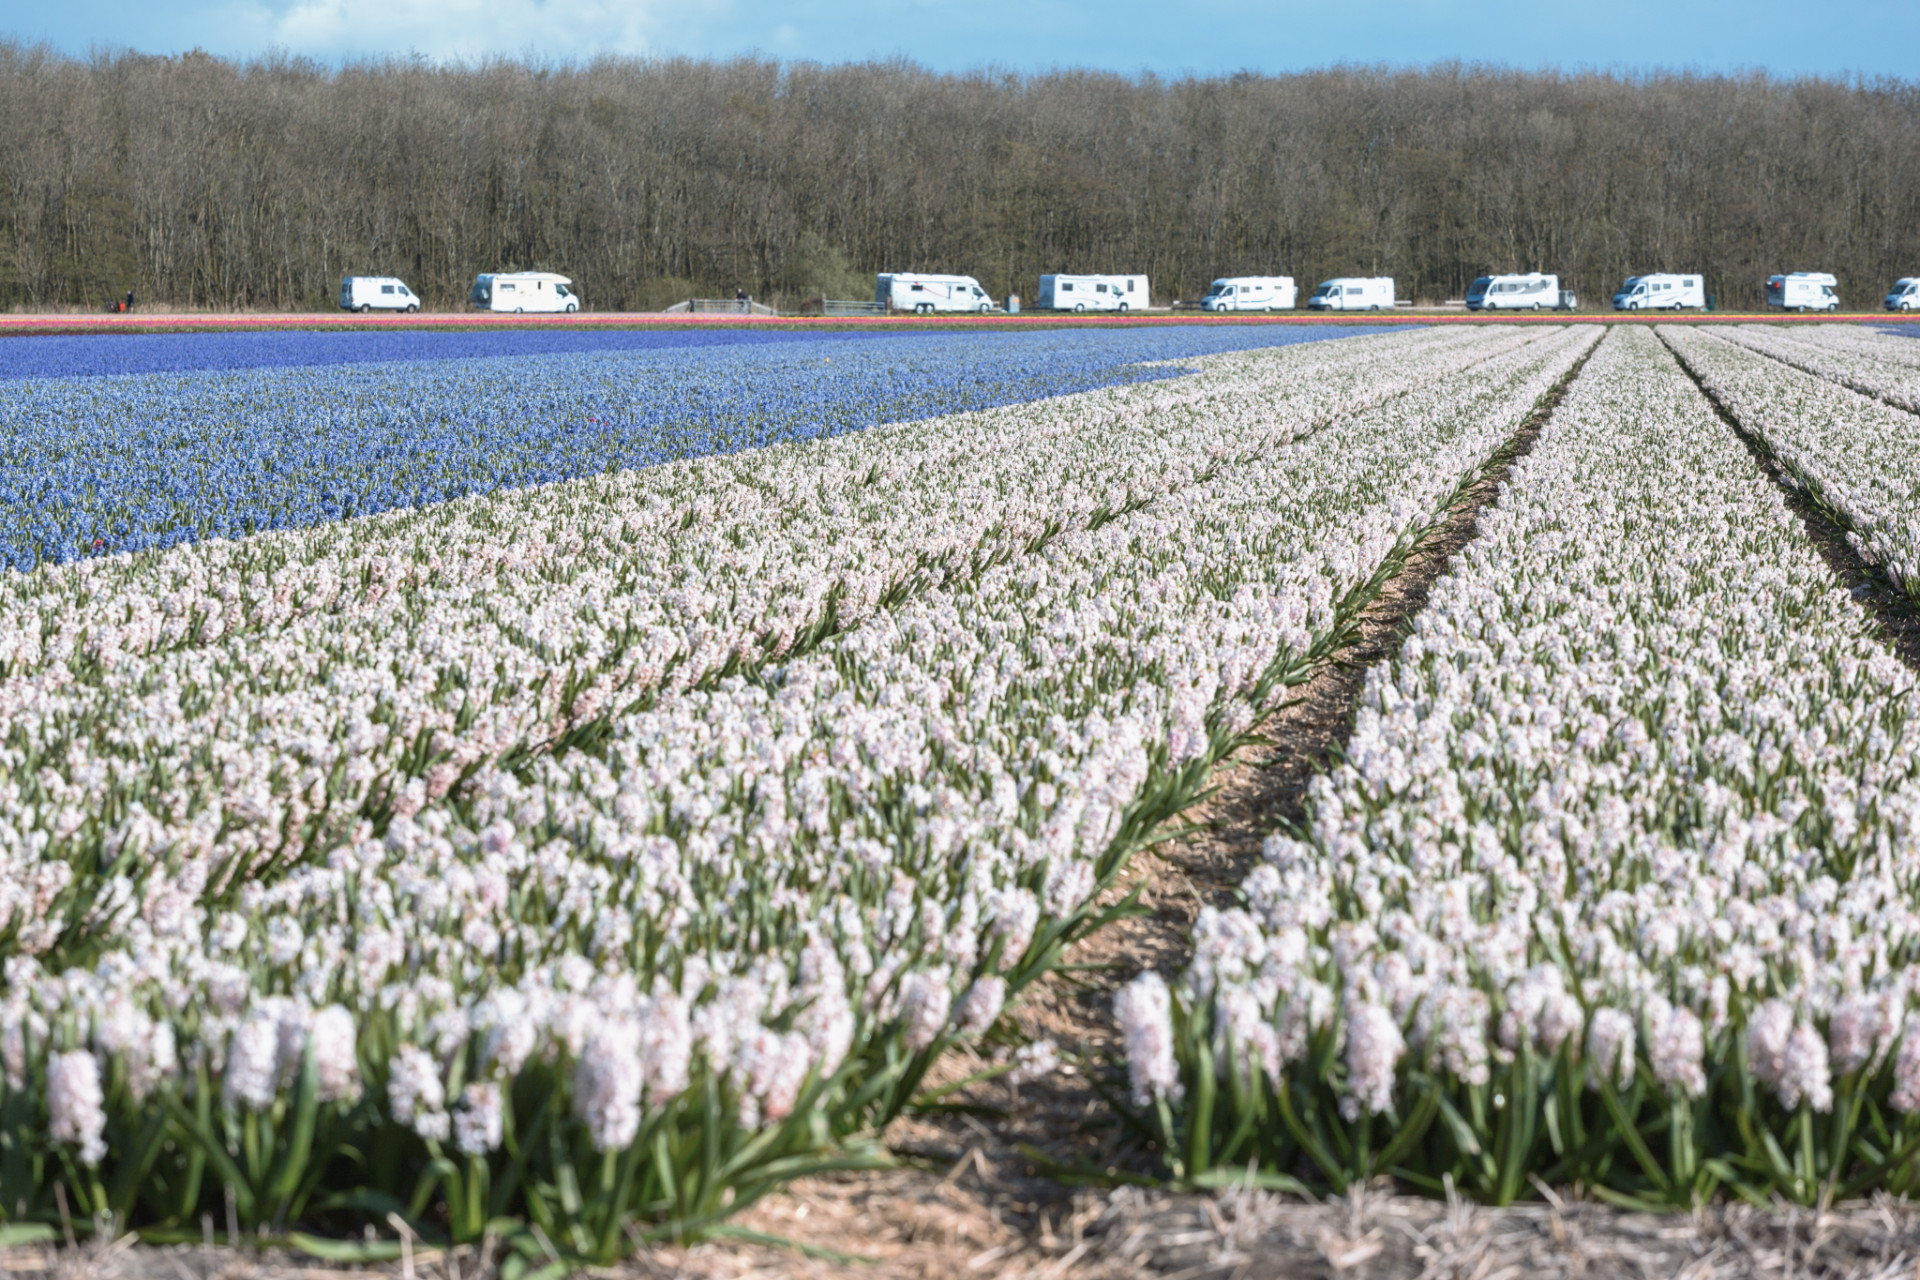 Wohnmobile am Tulpenfeld beim Camping in Holland